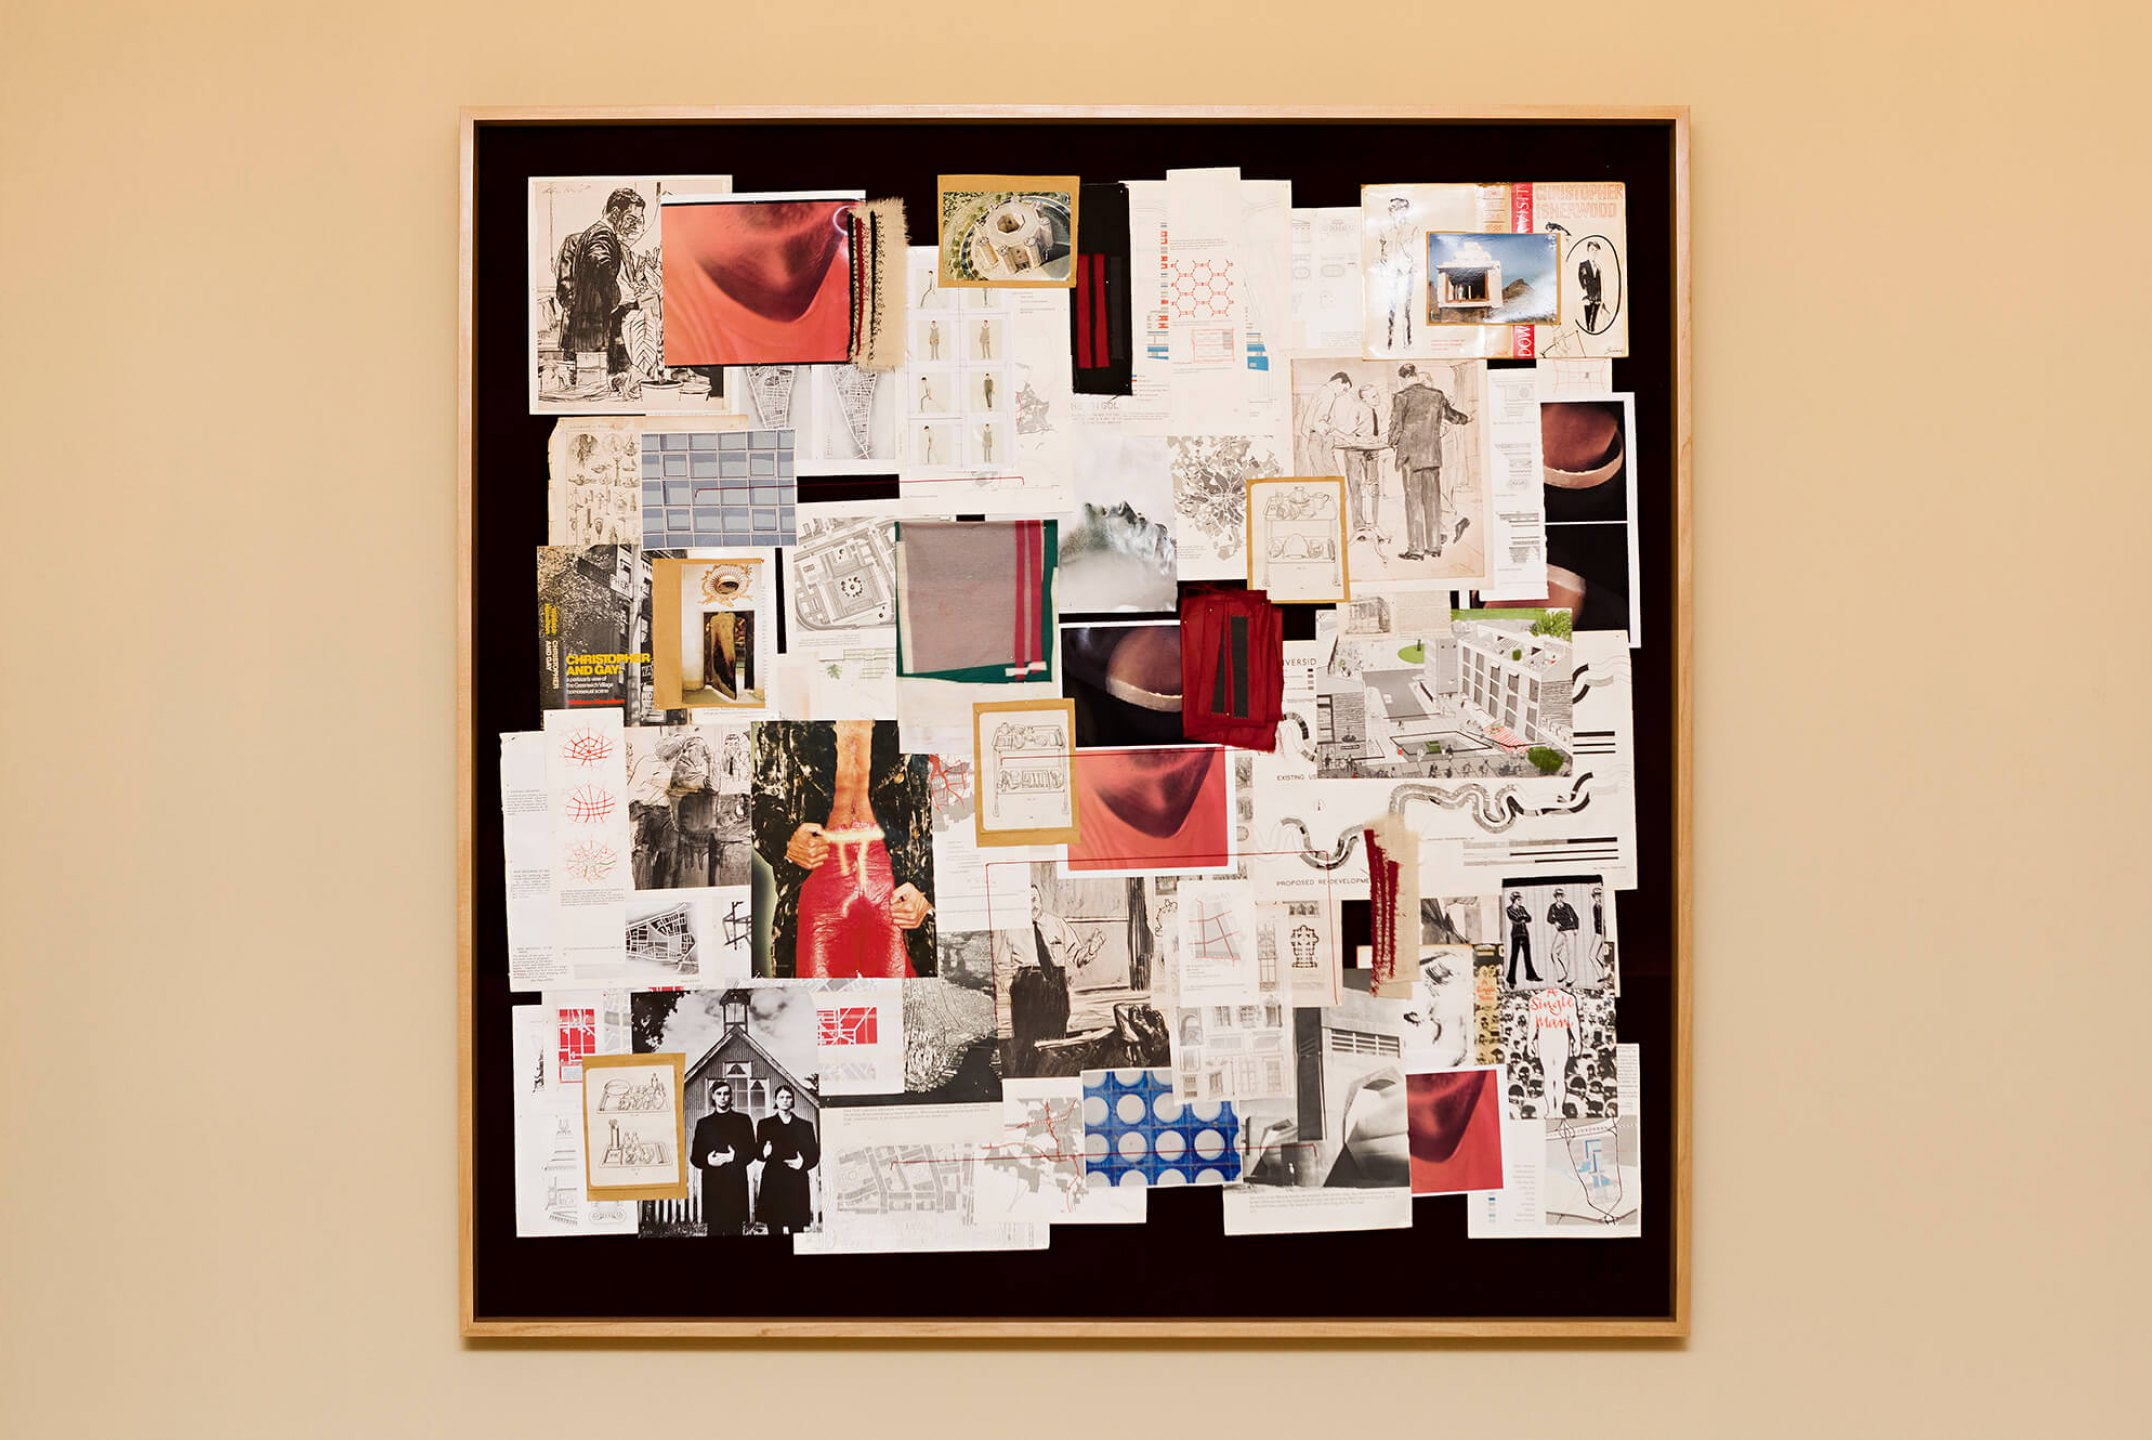 f.marquespeteado, <em>Storyboard Javier,</em> 2002/2014, print on paper and fabric, graphite on paper, photographs, newspaper and files on flocked foam framed, 143 × 142 × 8 cm - Mendes Wood DM